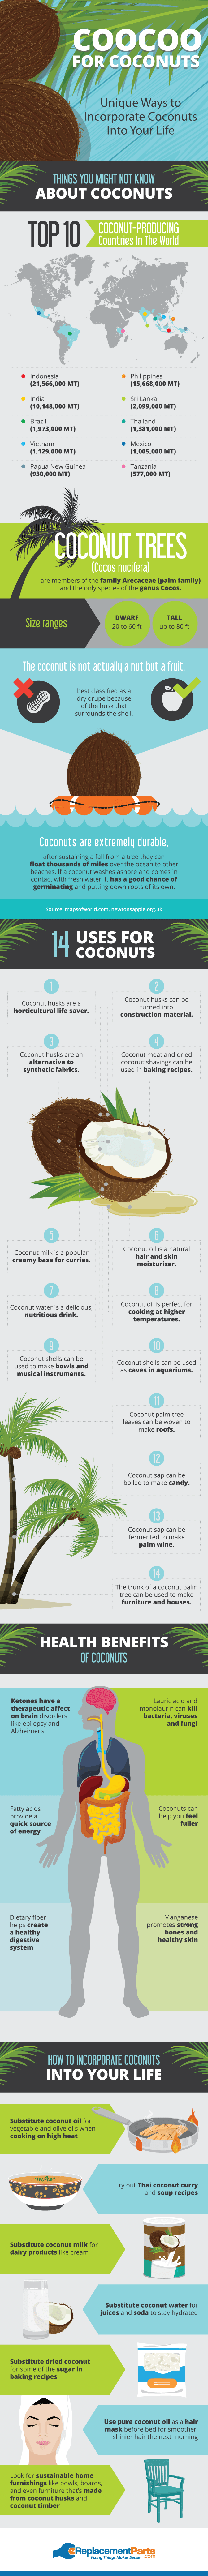 Ways to incorporate Coconuts into your life [Infographic] | ecogreenlove